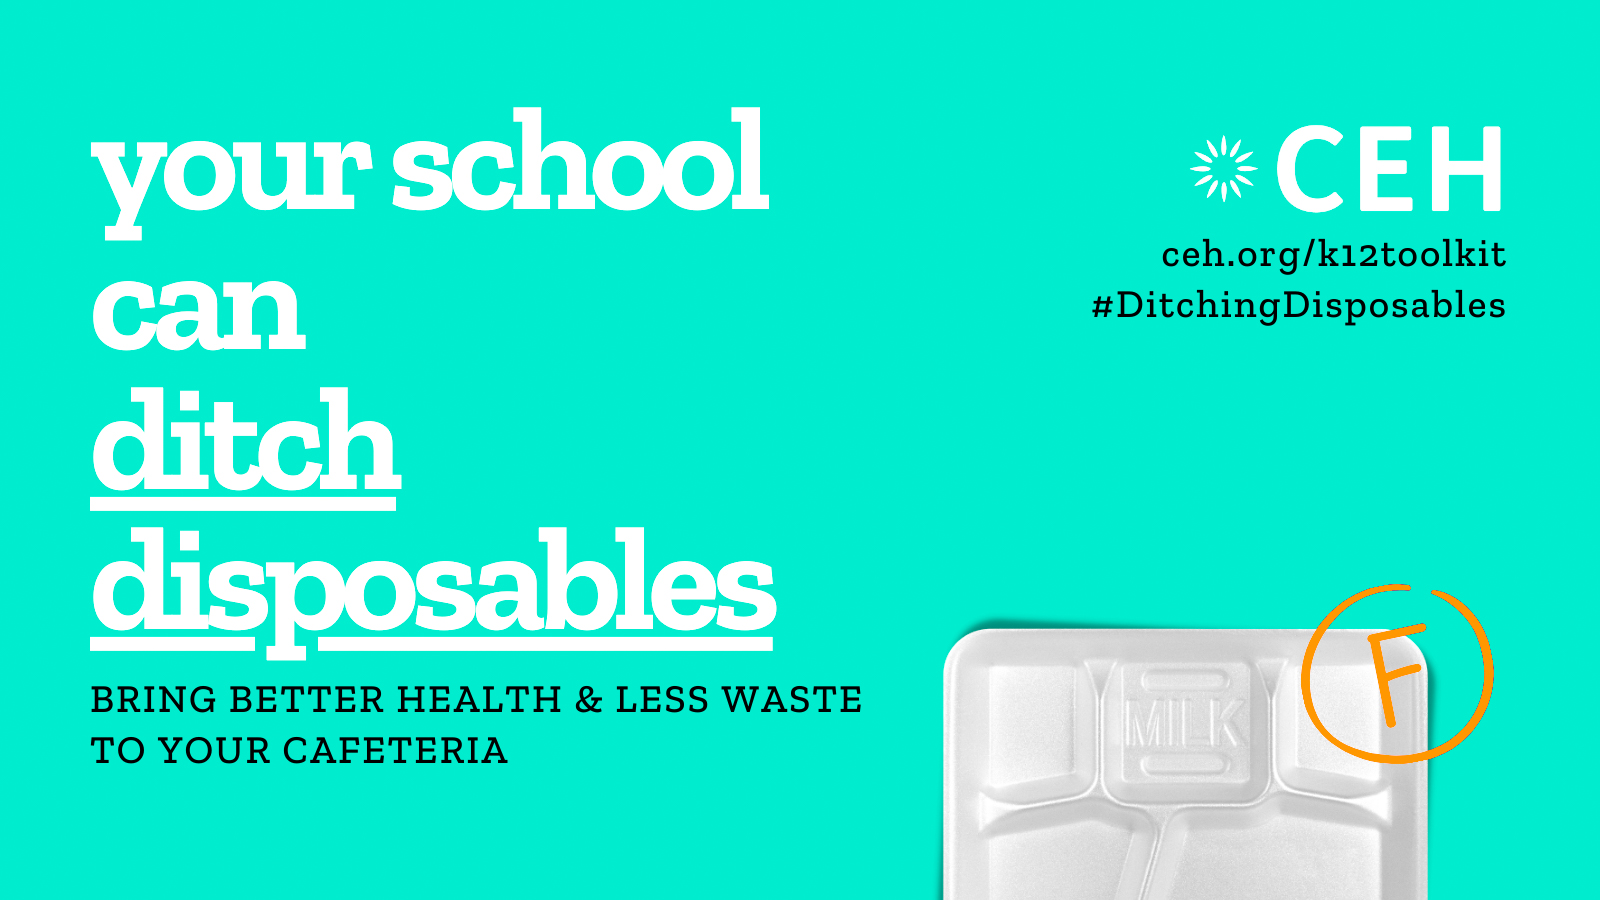 Your school can ditch disposables